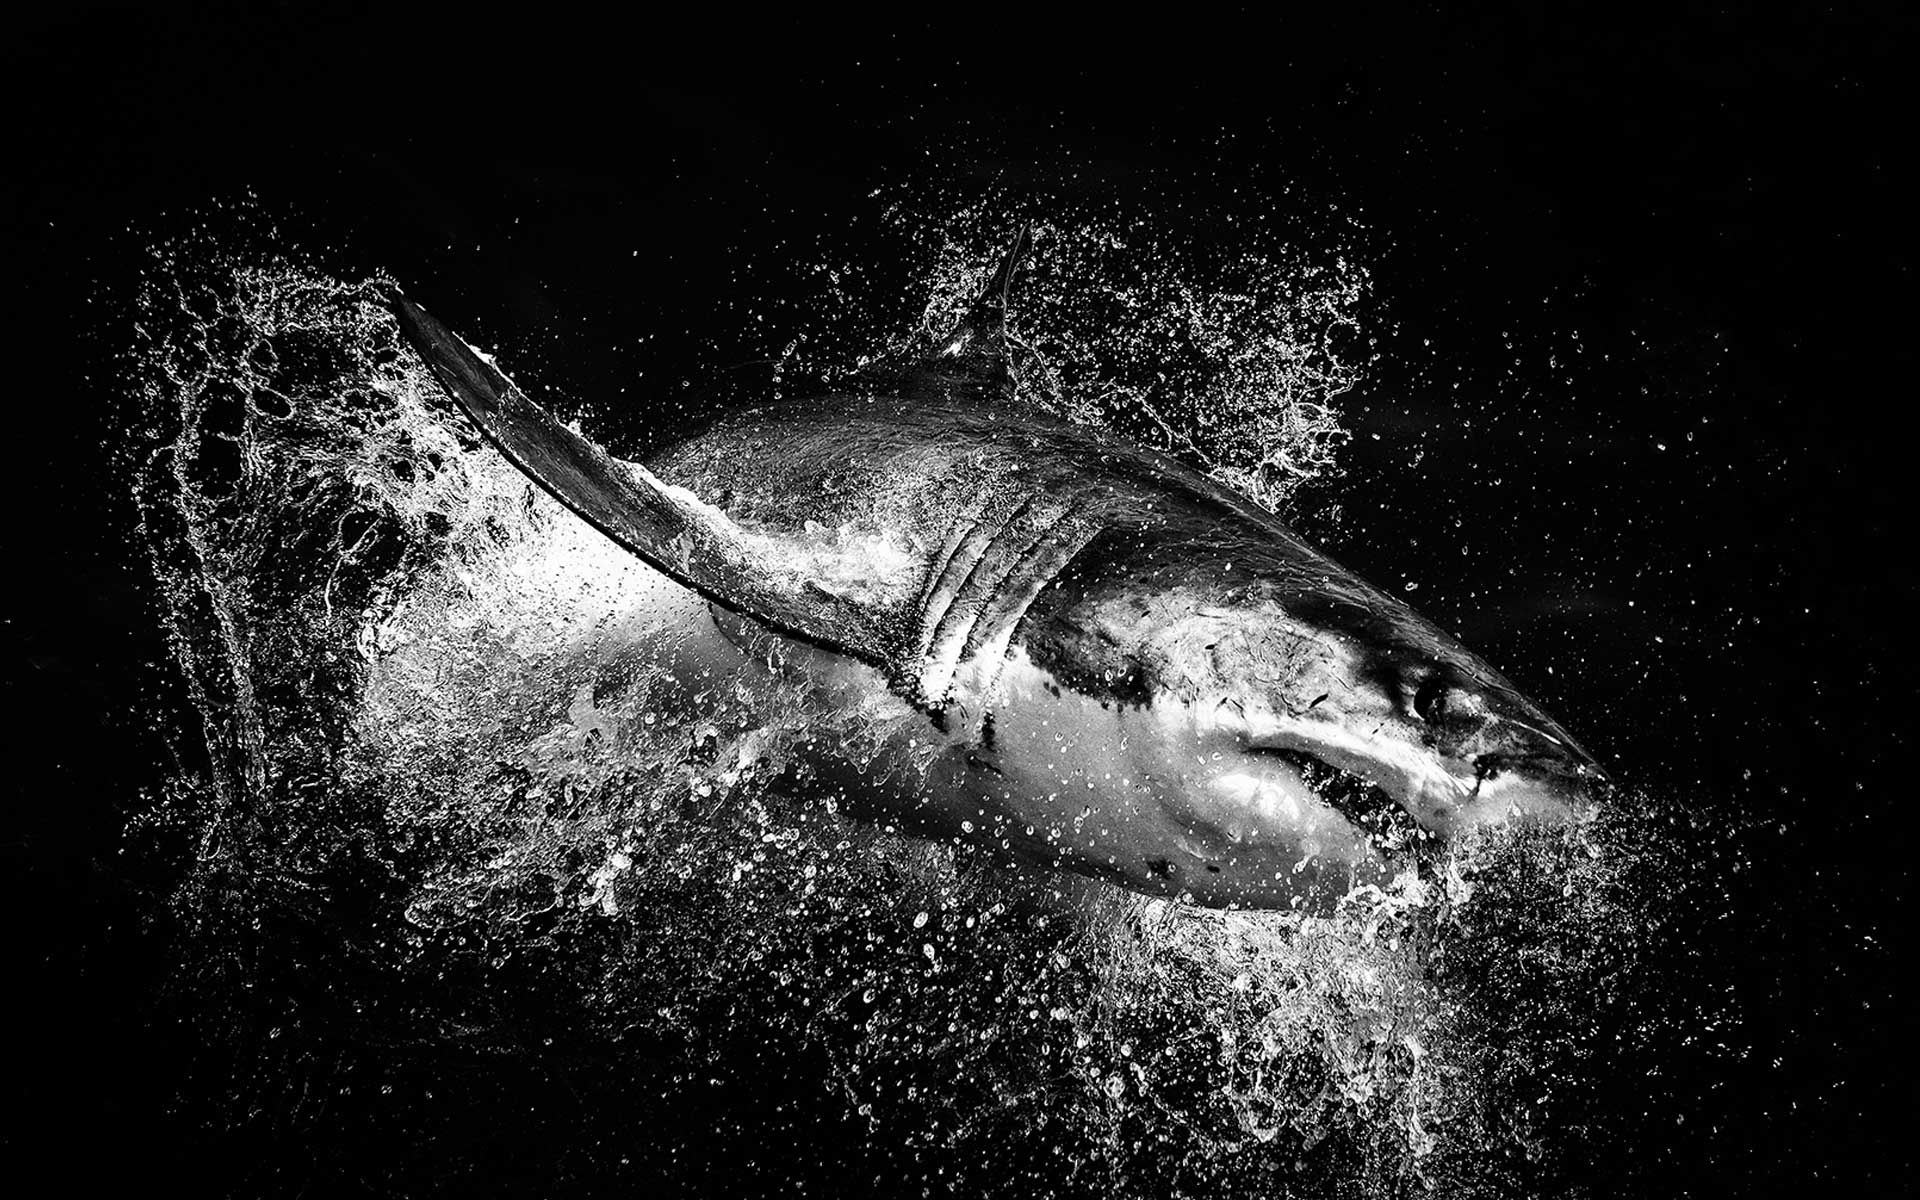 Great white shark breach a wild artistic photograph